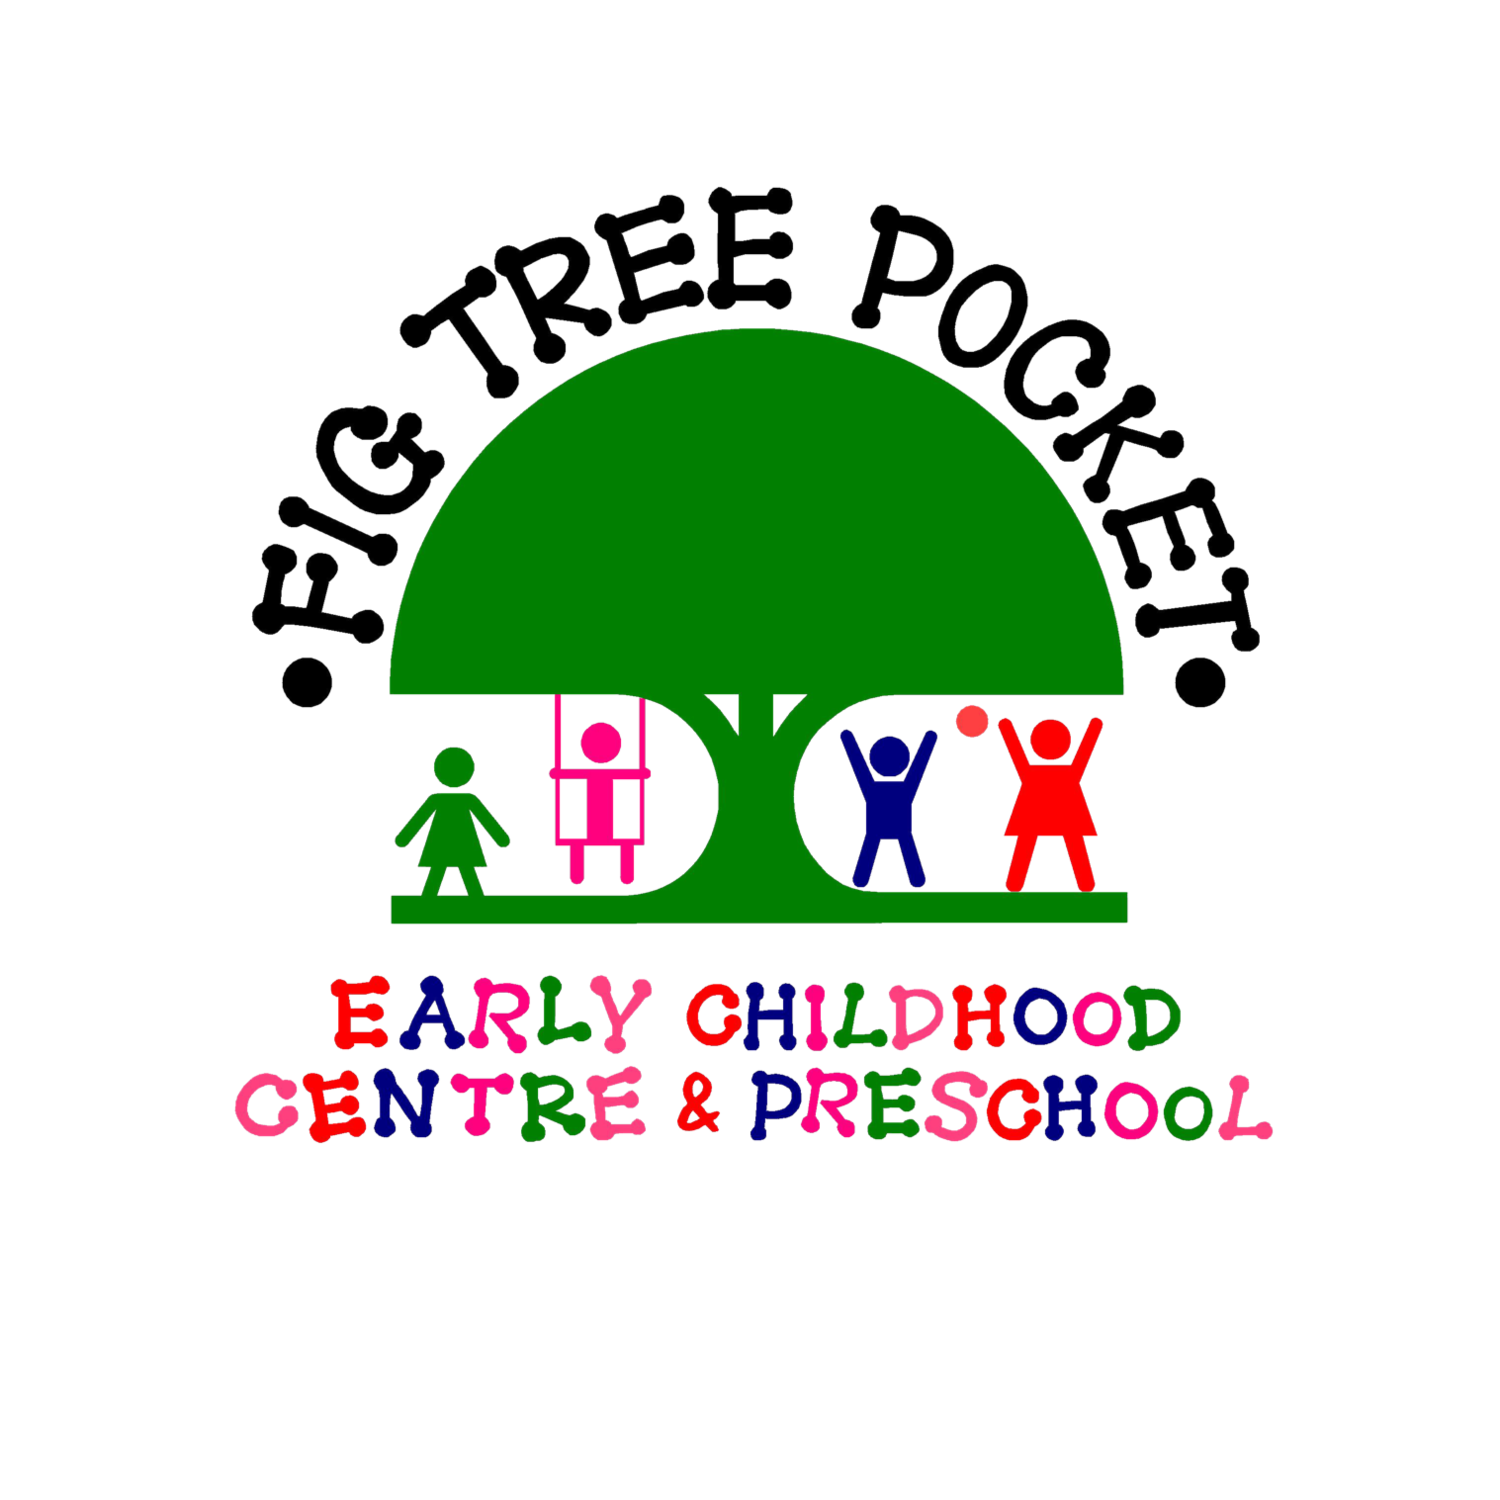 Fig Tree Pocket Early Childhood Centre